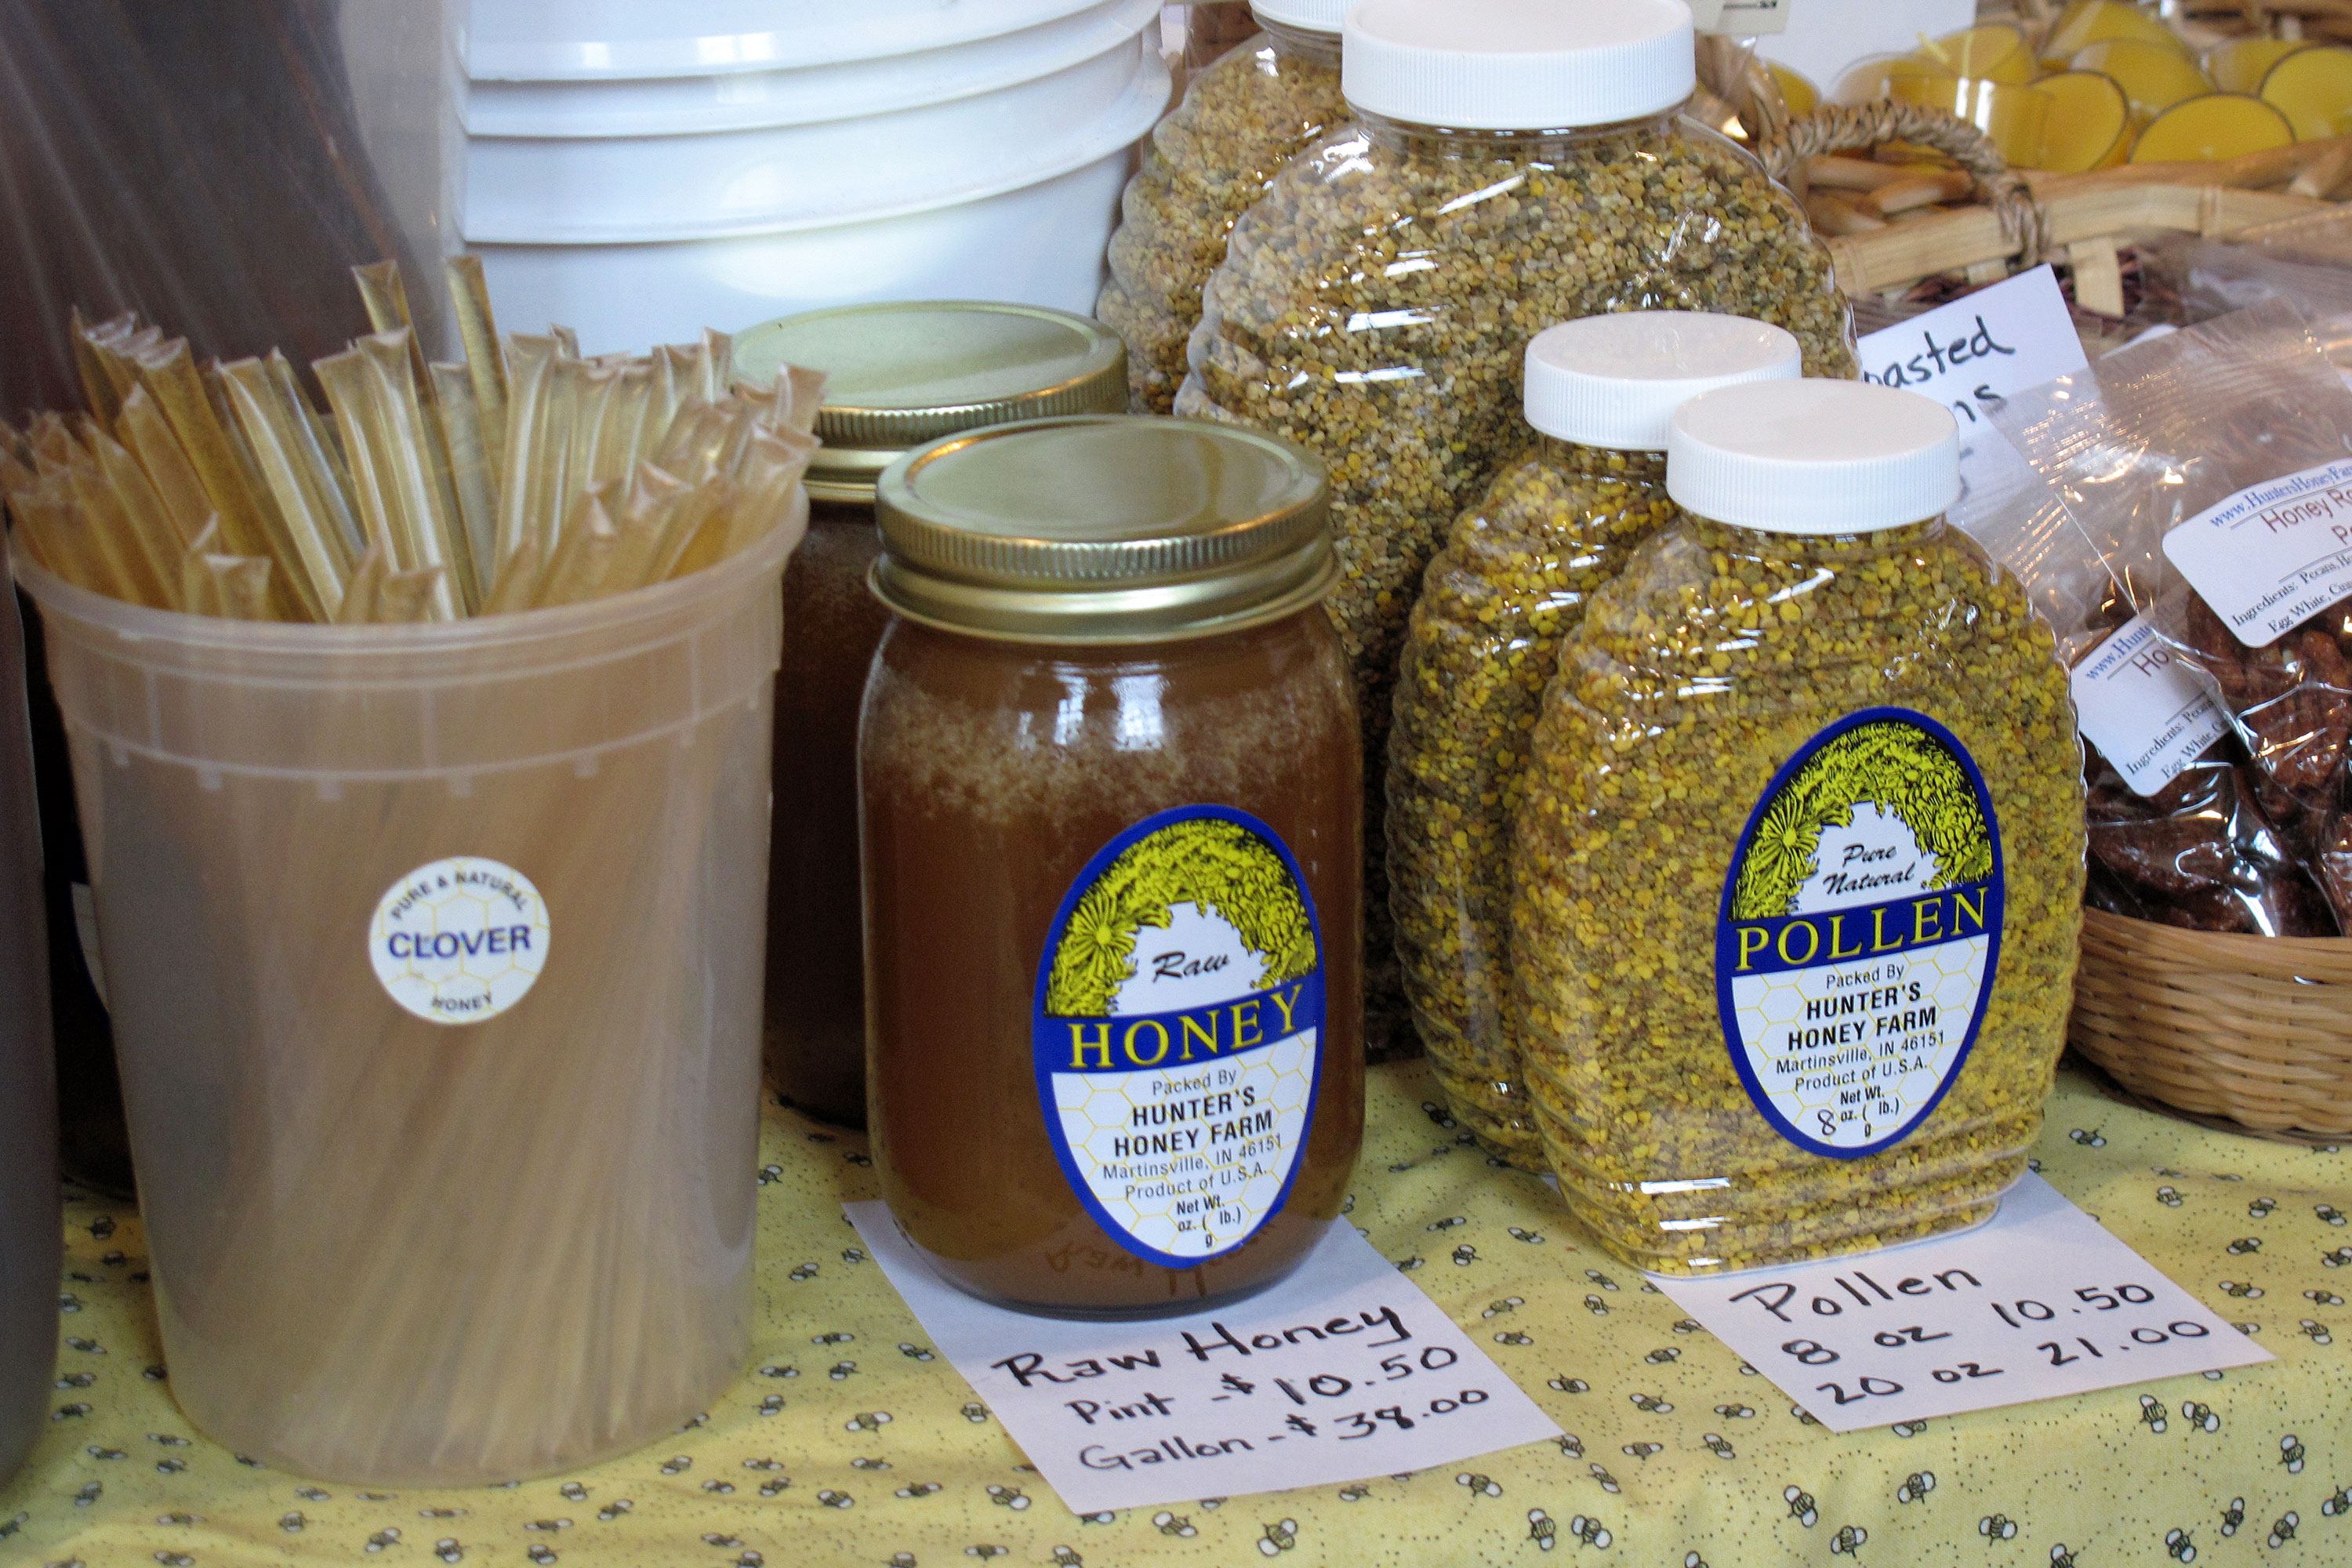 honey products sold by Hunters Honey Farm